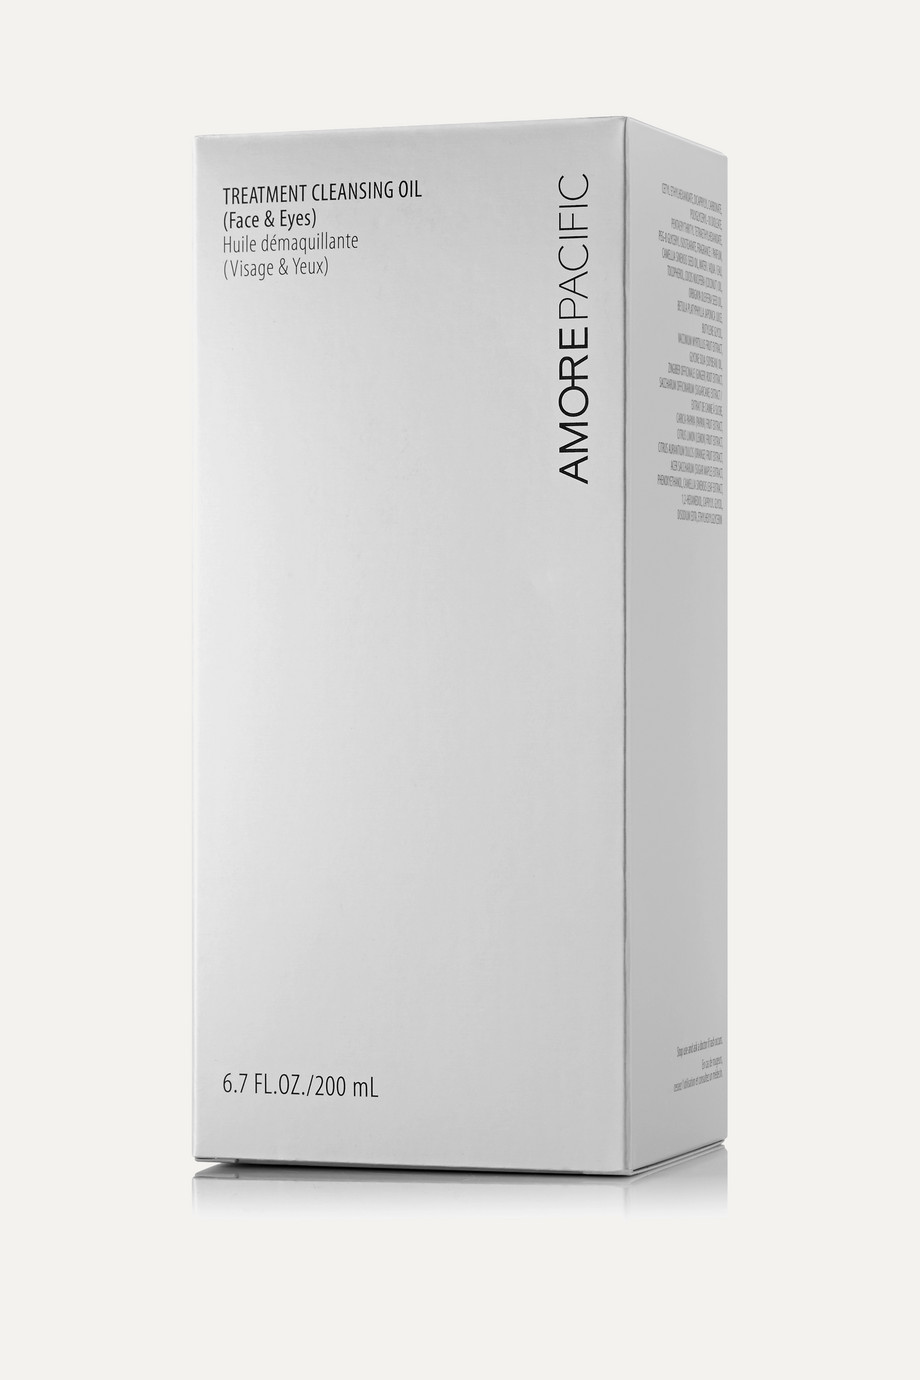 AMOREPACIFIC Treatment Cleansing Oil, 200ml